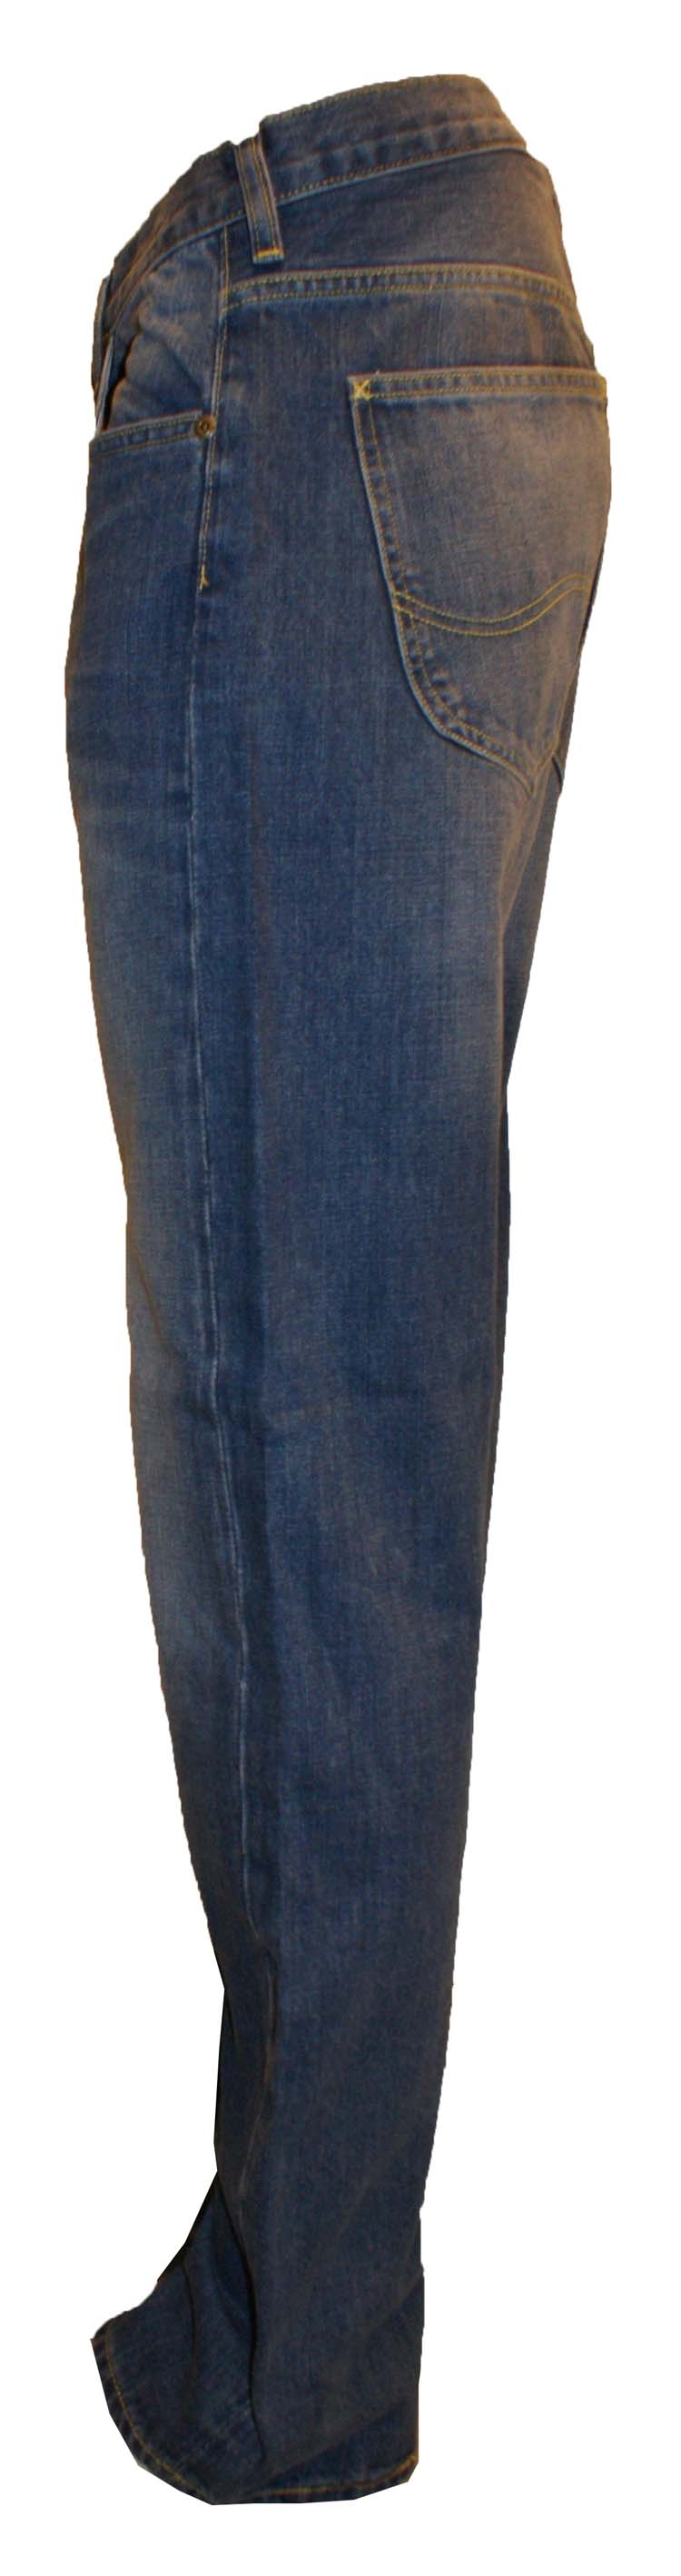 "Lee jeans  "" Kent ""  Medium used"